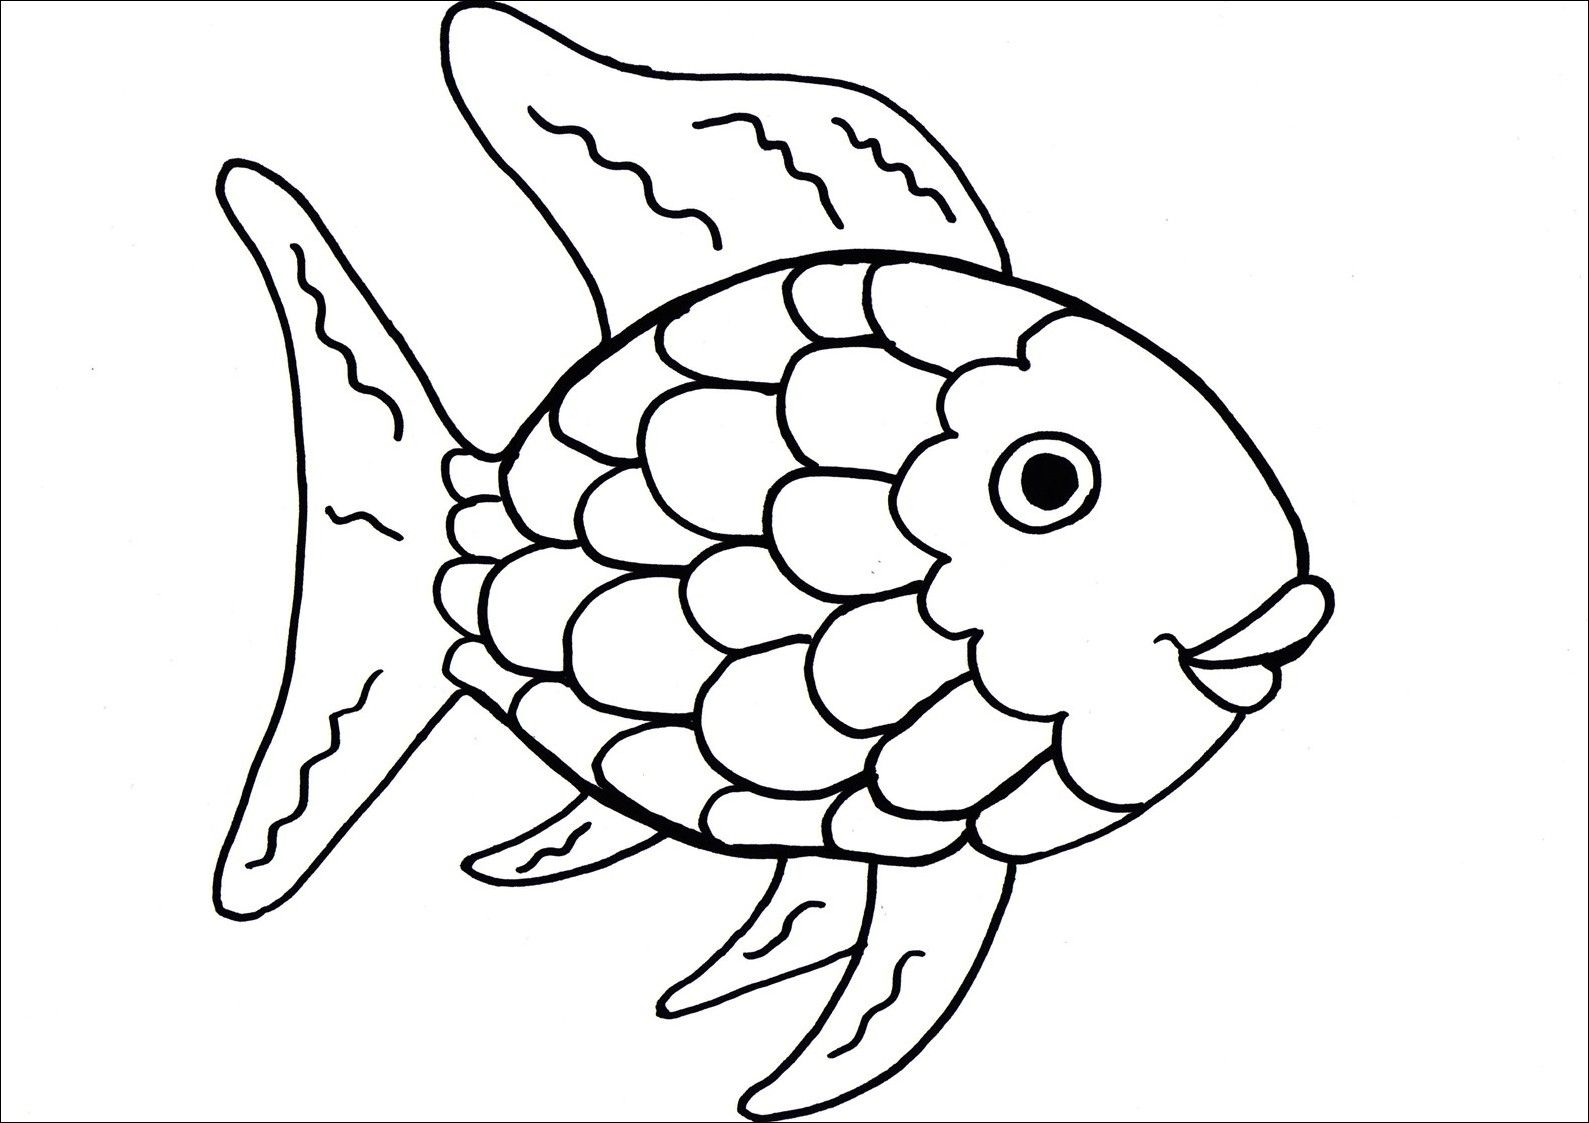 The Rainbow Fish Coloring Template | Pics Photos - Coloring Pages ...